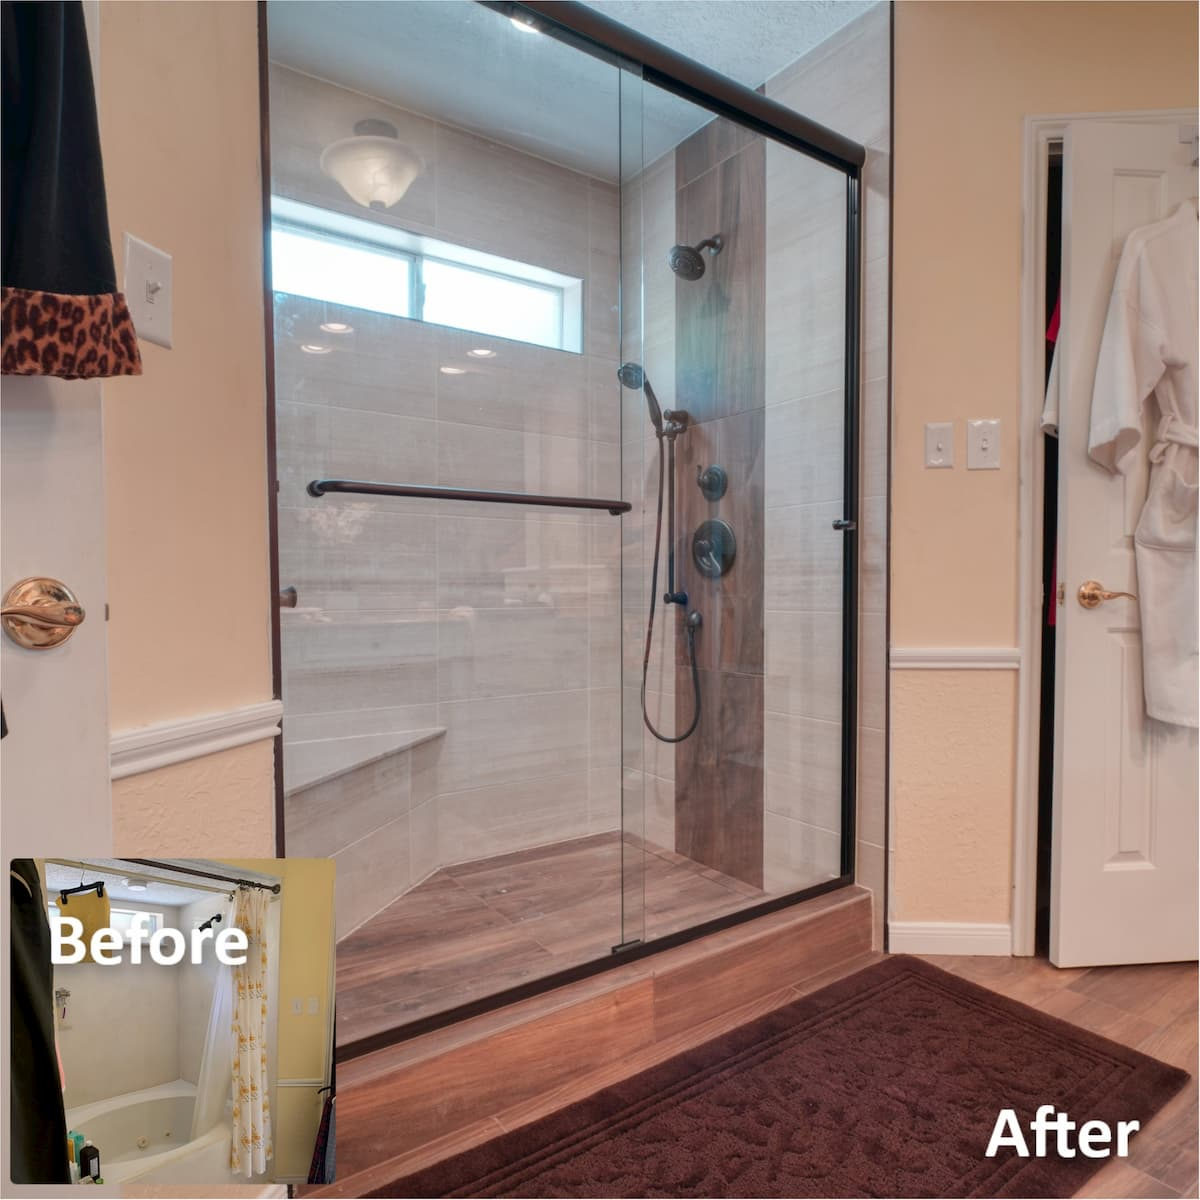 Tub to shower conversion using tile shower system schluter and linear drain